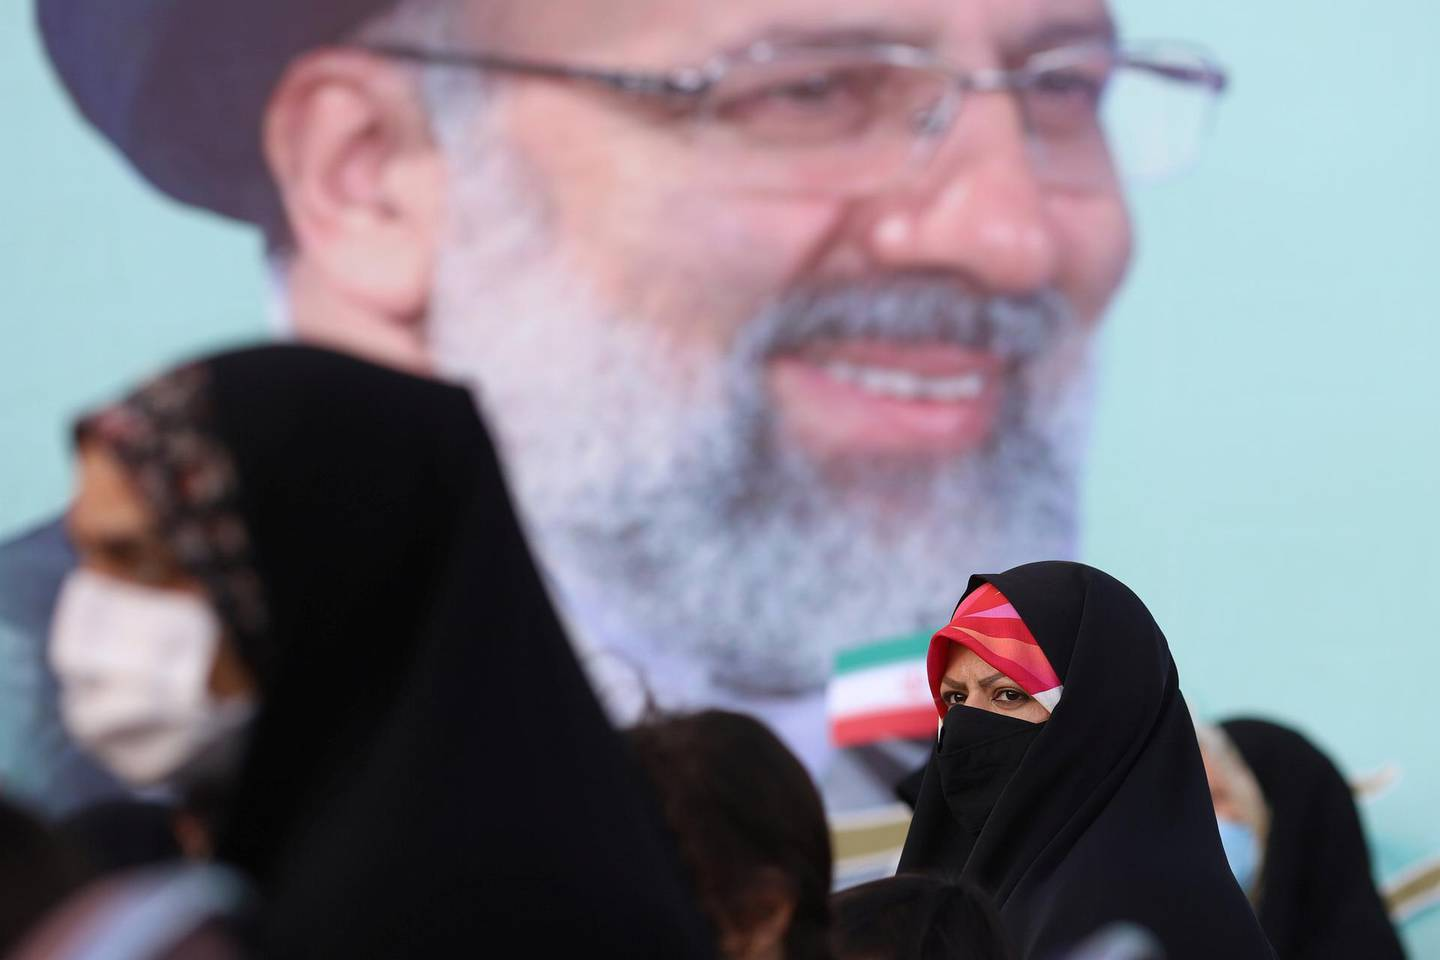 Supporters of Ebrahim Raisi gather near his poster to celebrate his presidential election victory in Tehran, Iran June 19, 2021. Majid Asgaripour/WANA (West Asia News Agency) via REUTERS ATTENTION EDITORS - THIS IMAGE HAS BEEN SUPPLIED BY A THIRD PARTY.